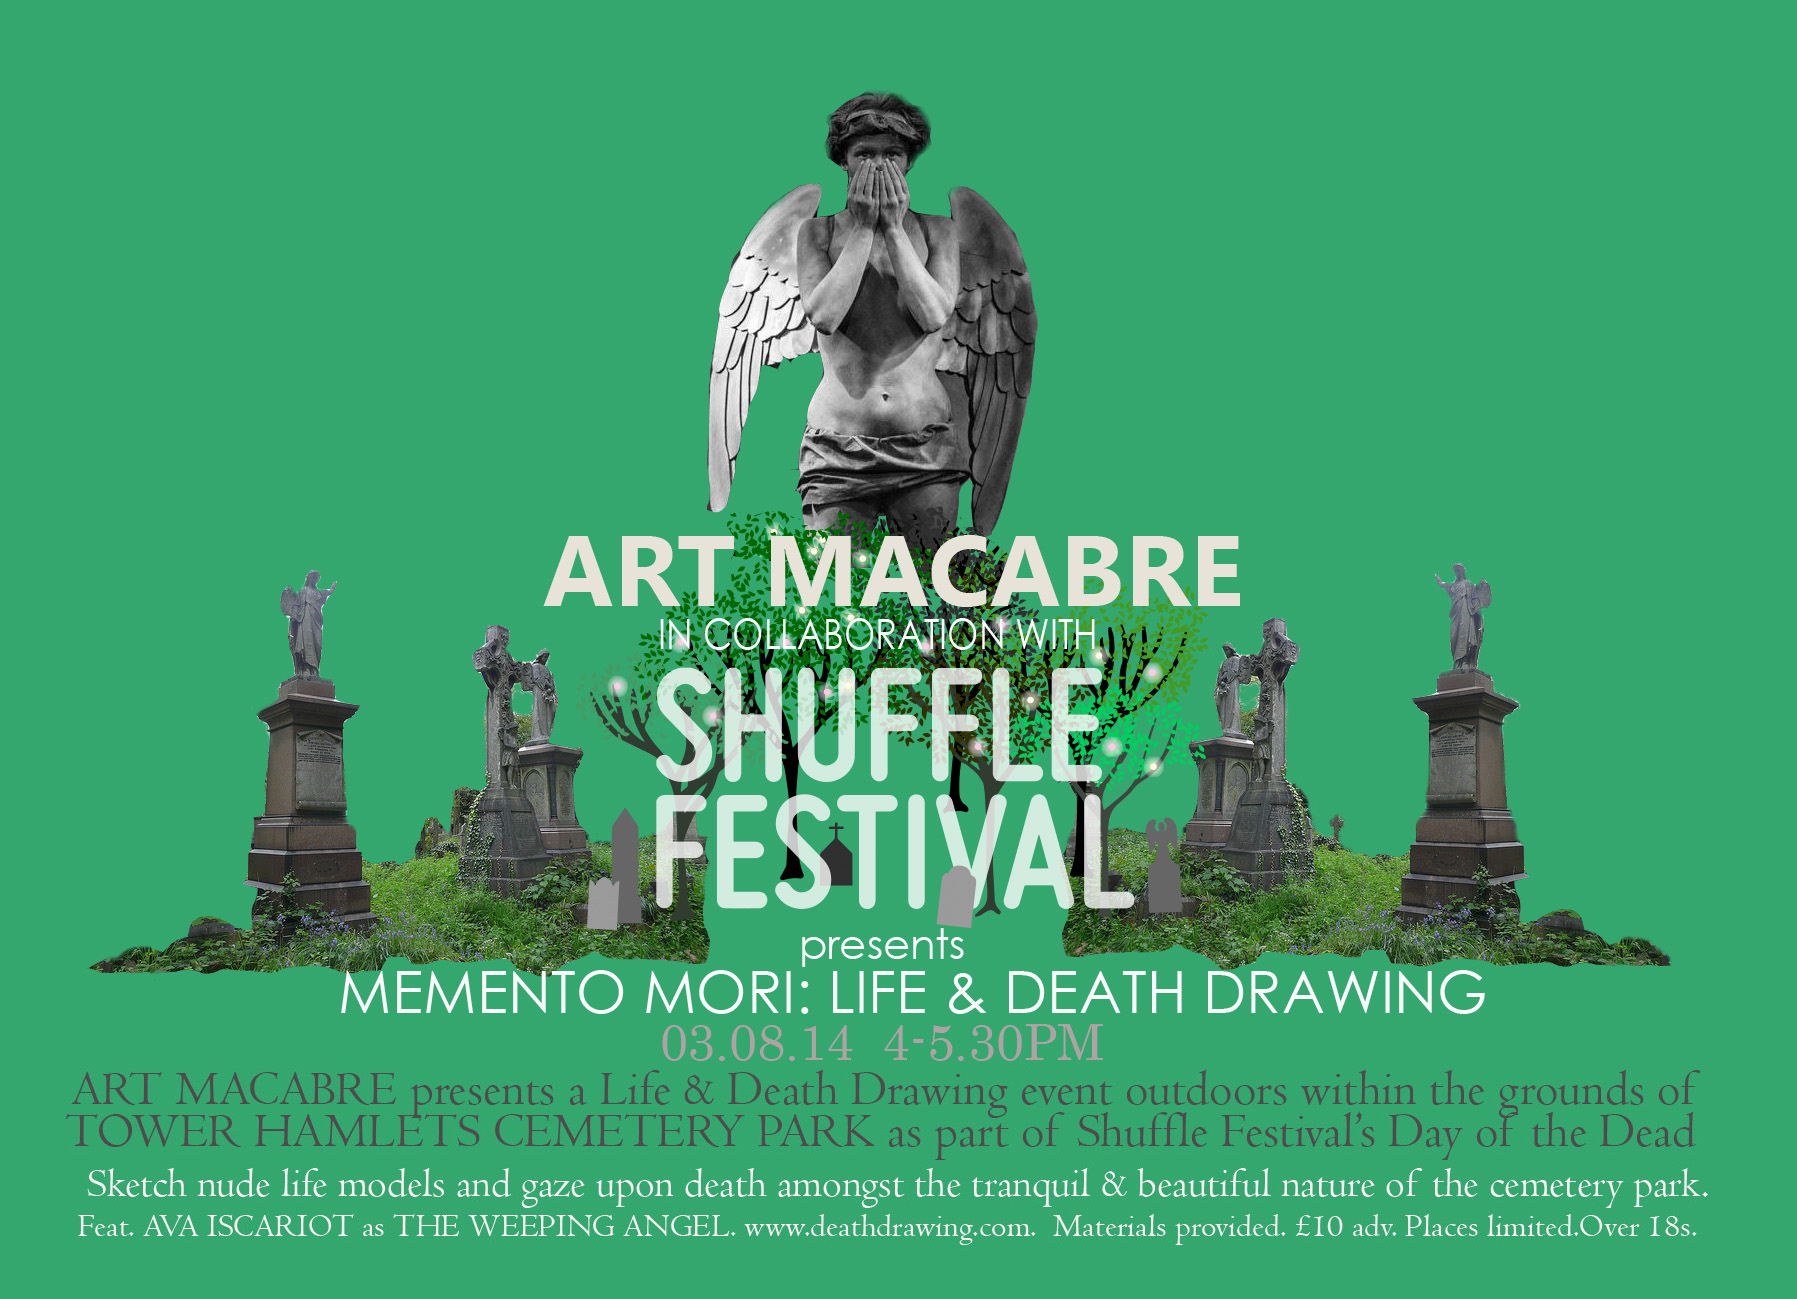 Art Macabre at Sh